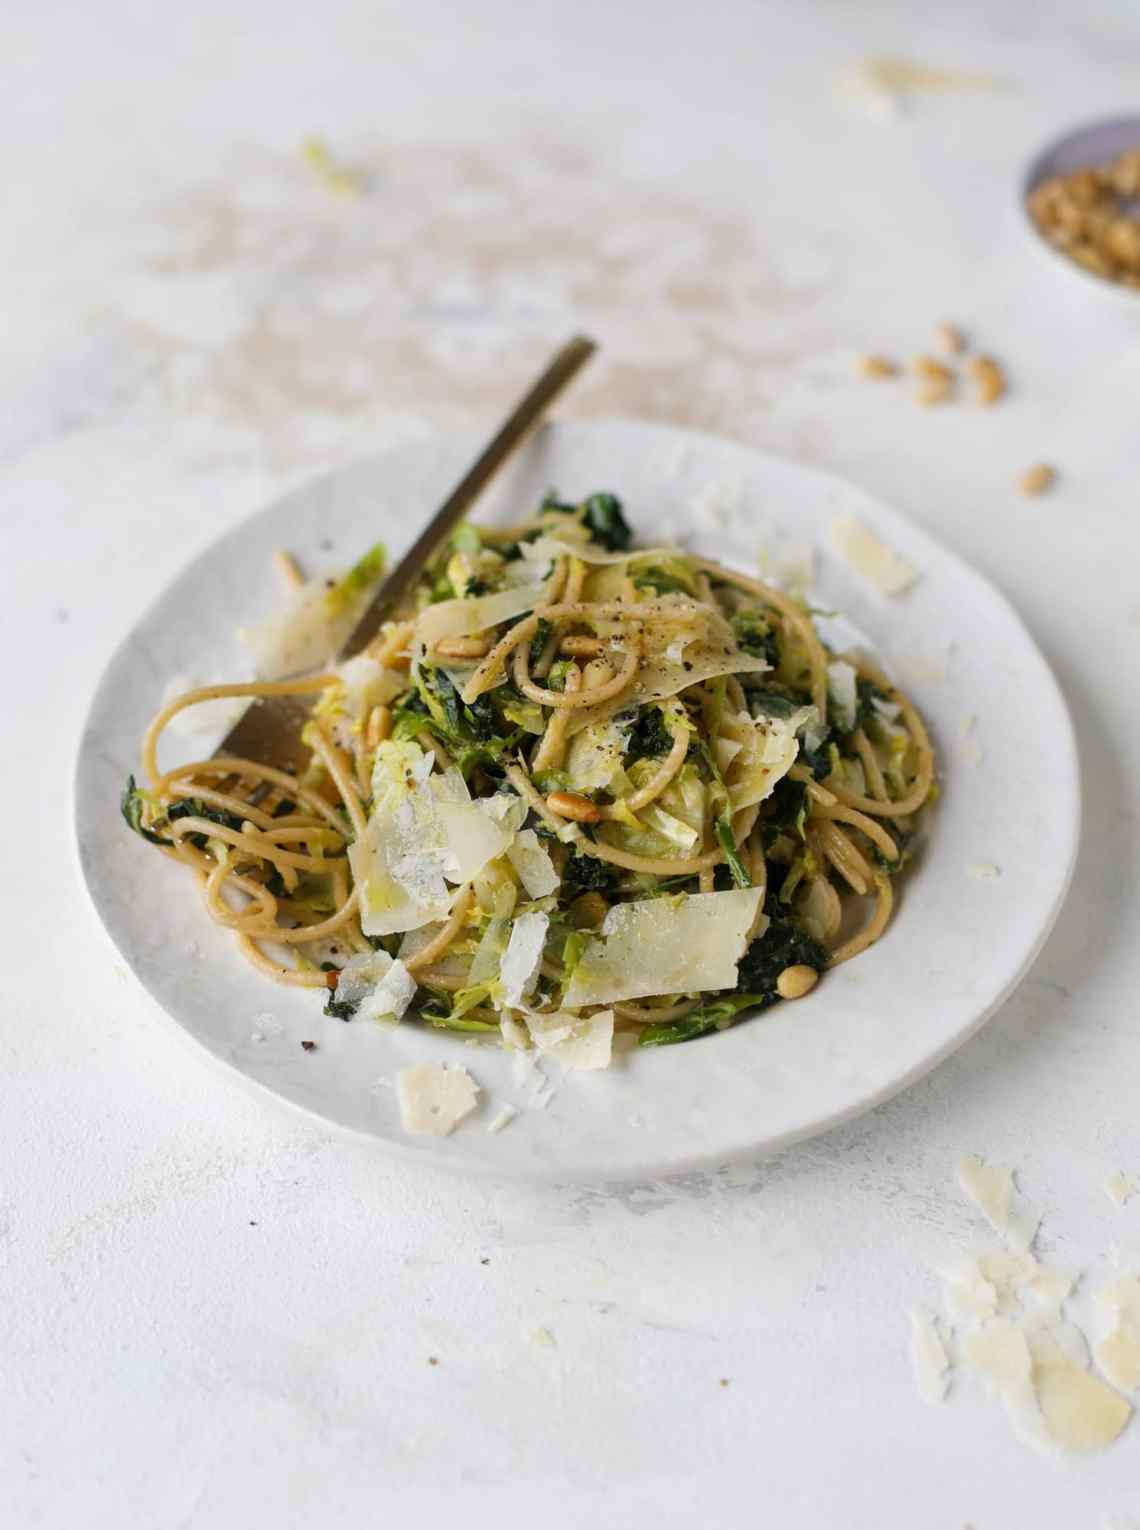 This brussels spaghetti with kale, parmesan and pine nuts is a super flavorful, quick and easy weeknight meal. You can add in a protein if you wish! I howsweeteats.com #brussels #spaghetti